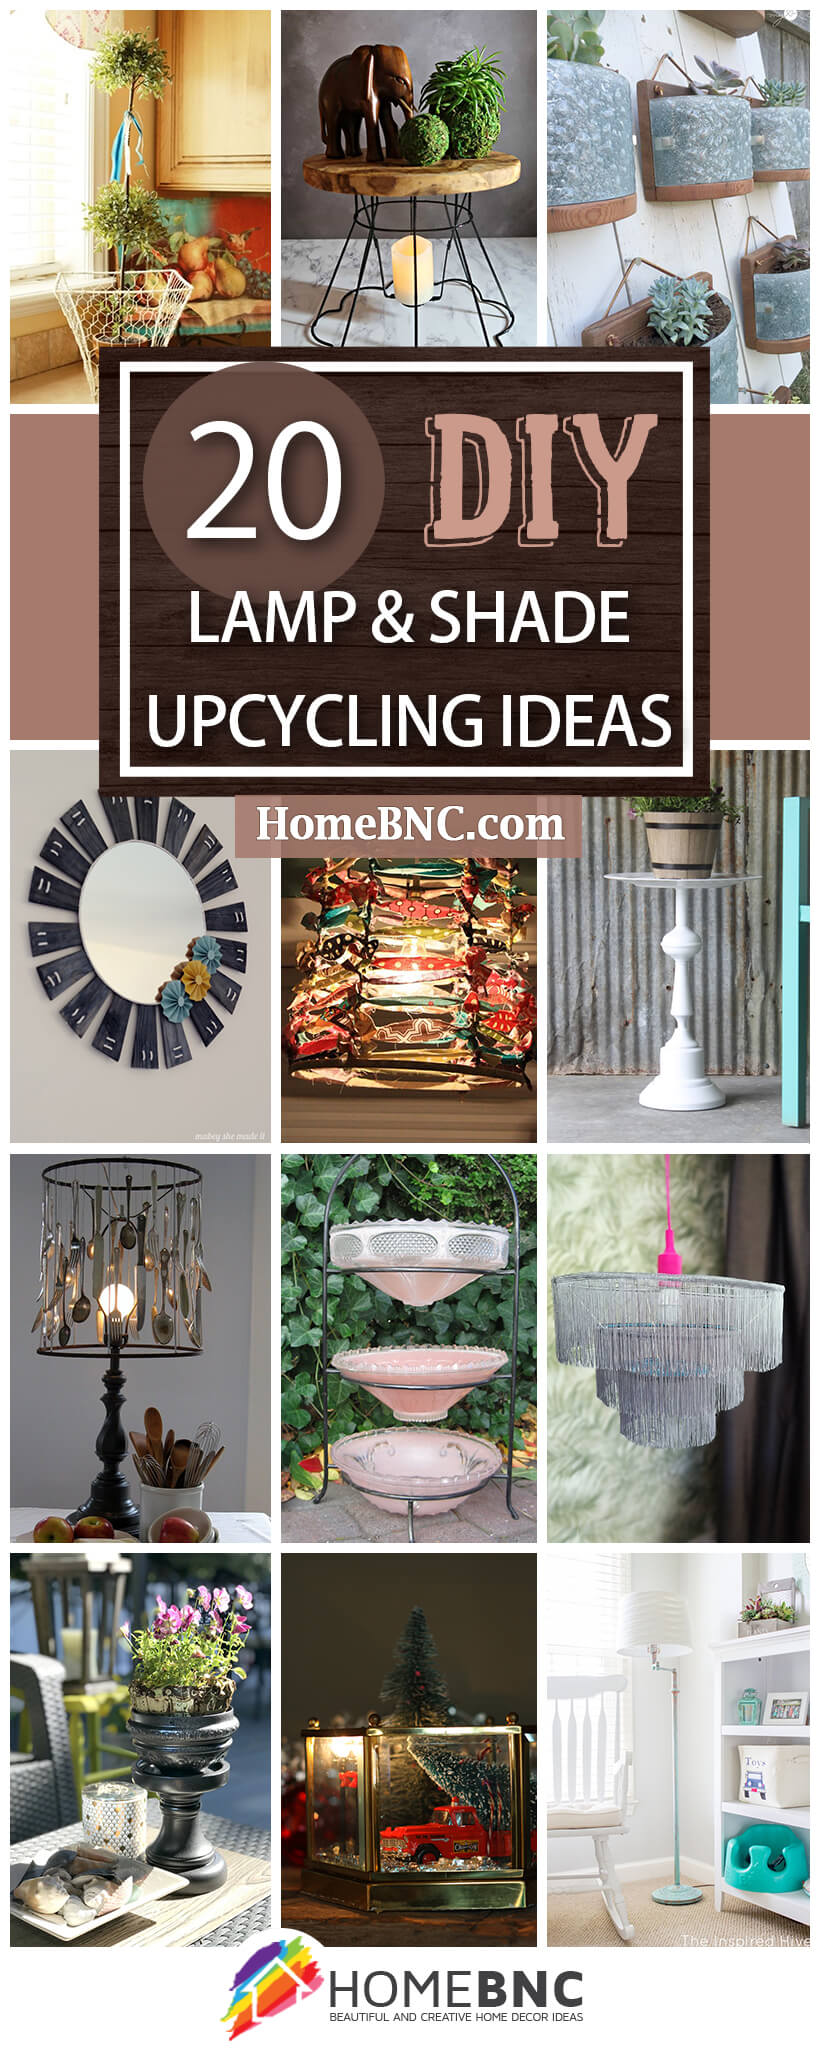 20 Best Upcycling Ideas For Lamps And Lamp Shades In 2021